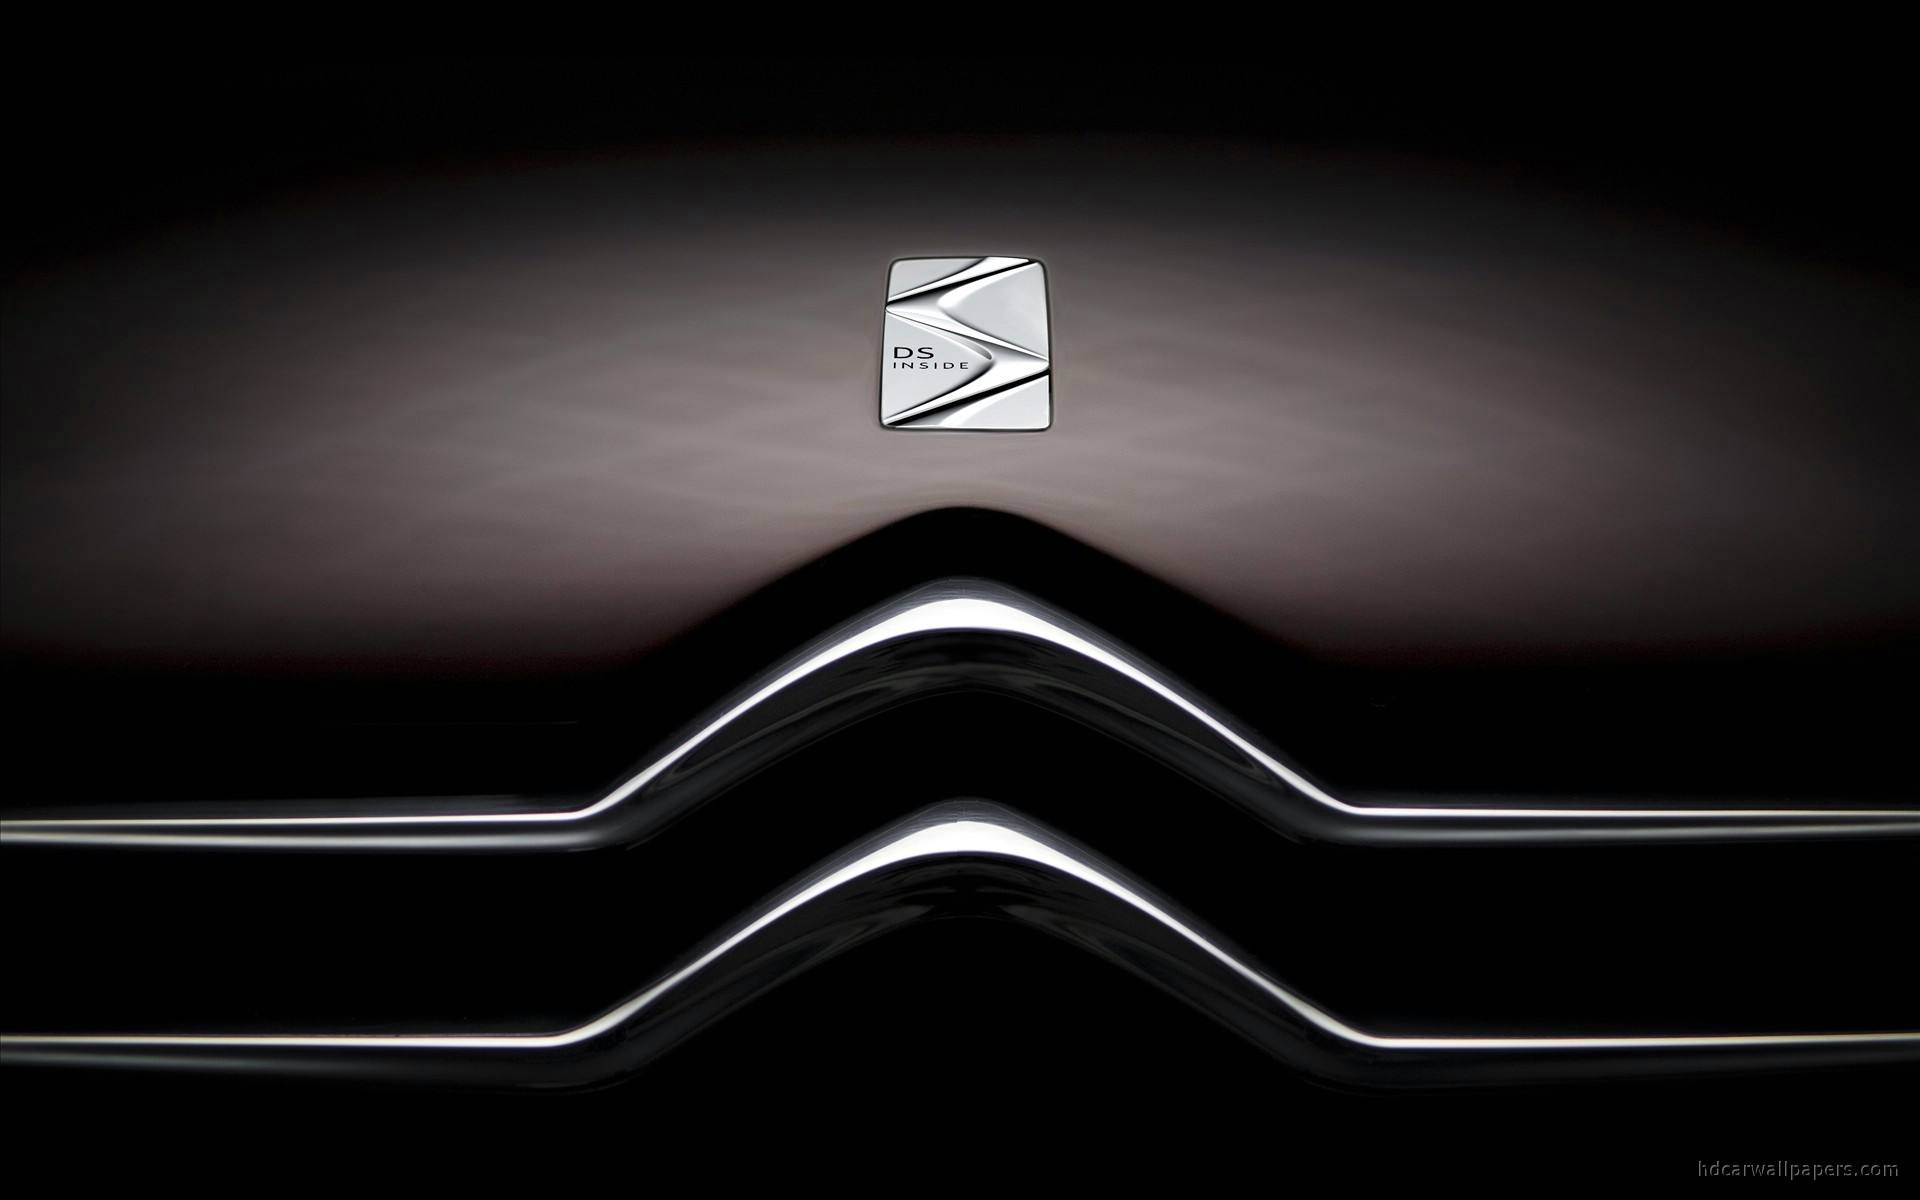 citroen-ds-inside-logo-Citroen-Ds-Inside-Logo-Pictures-Car-Hd-intended-for-wallpaper-wp3604091